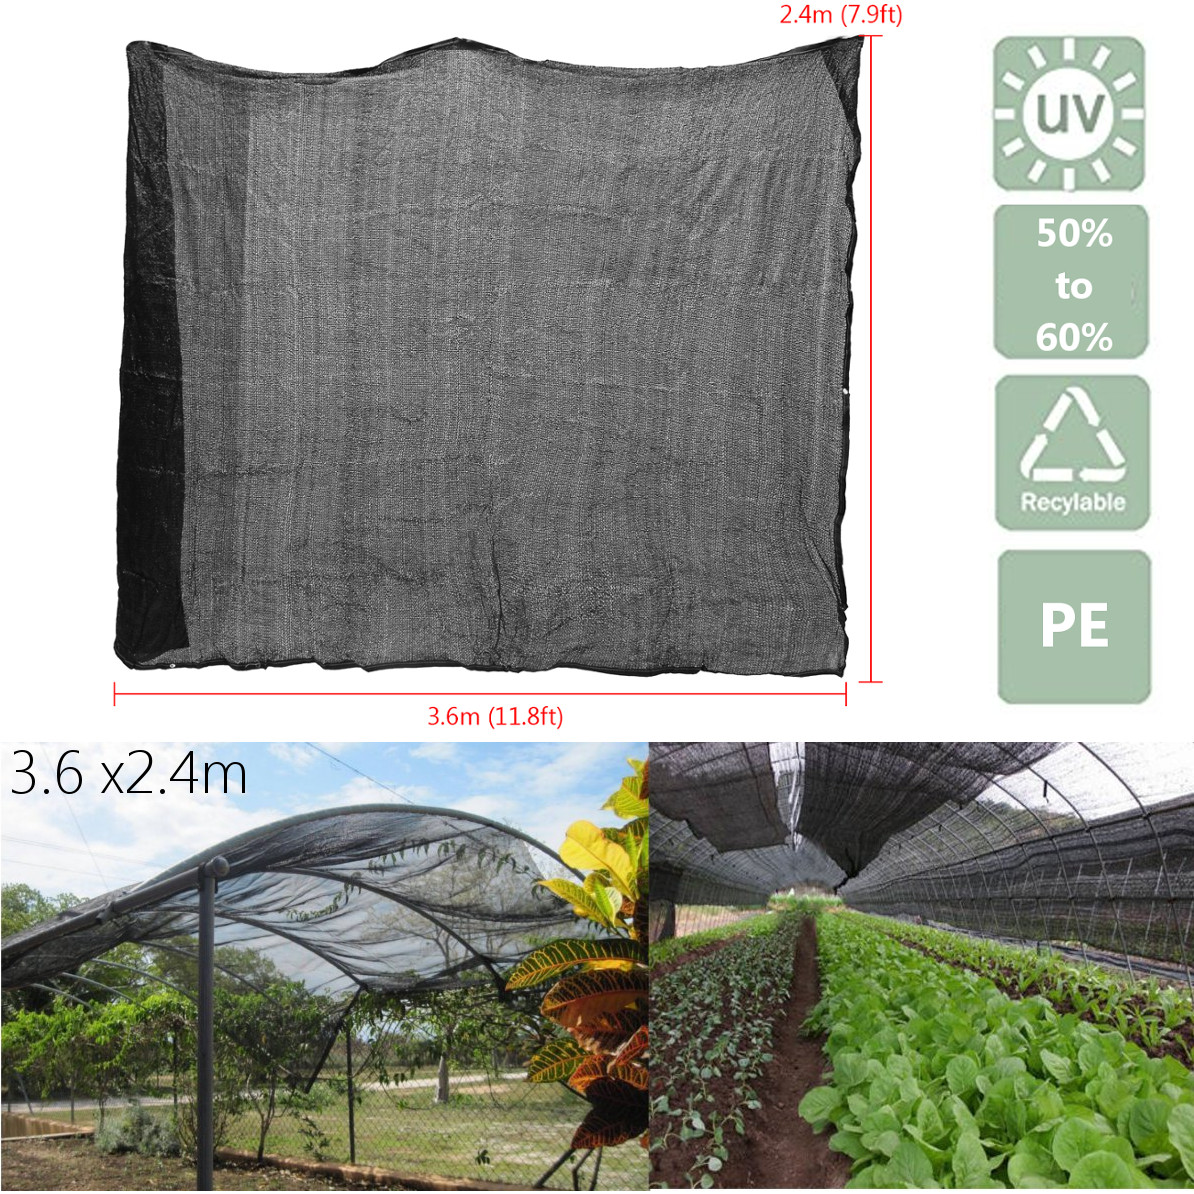 7.9x11.8ft Polyethylene Sun Block Shade Cloth for Plant Cover Greenhouse Barn or Kennel